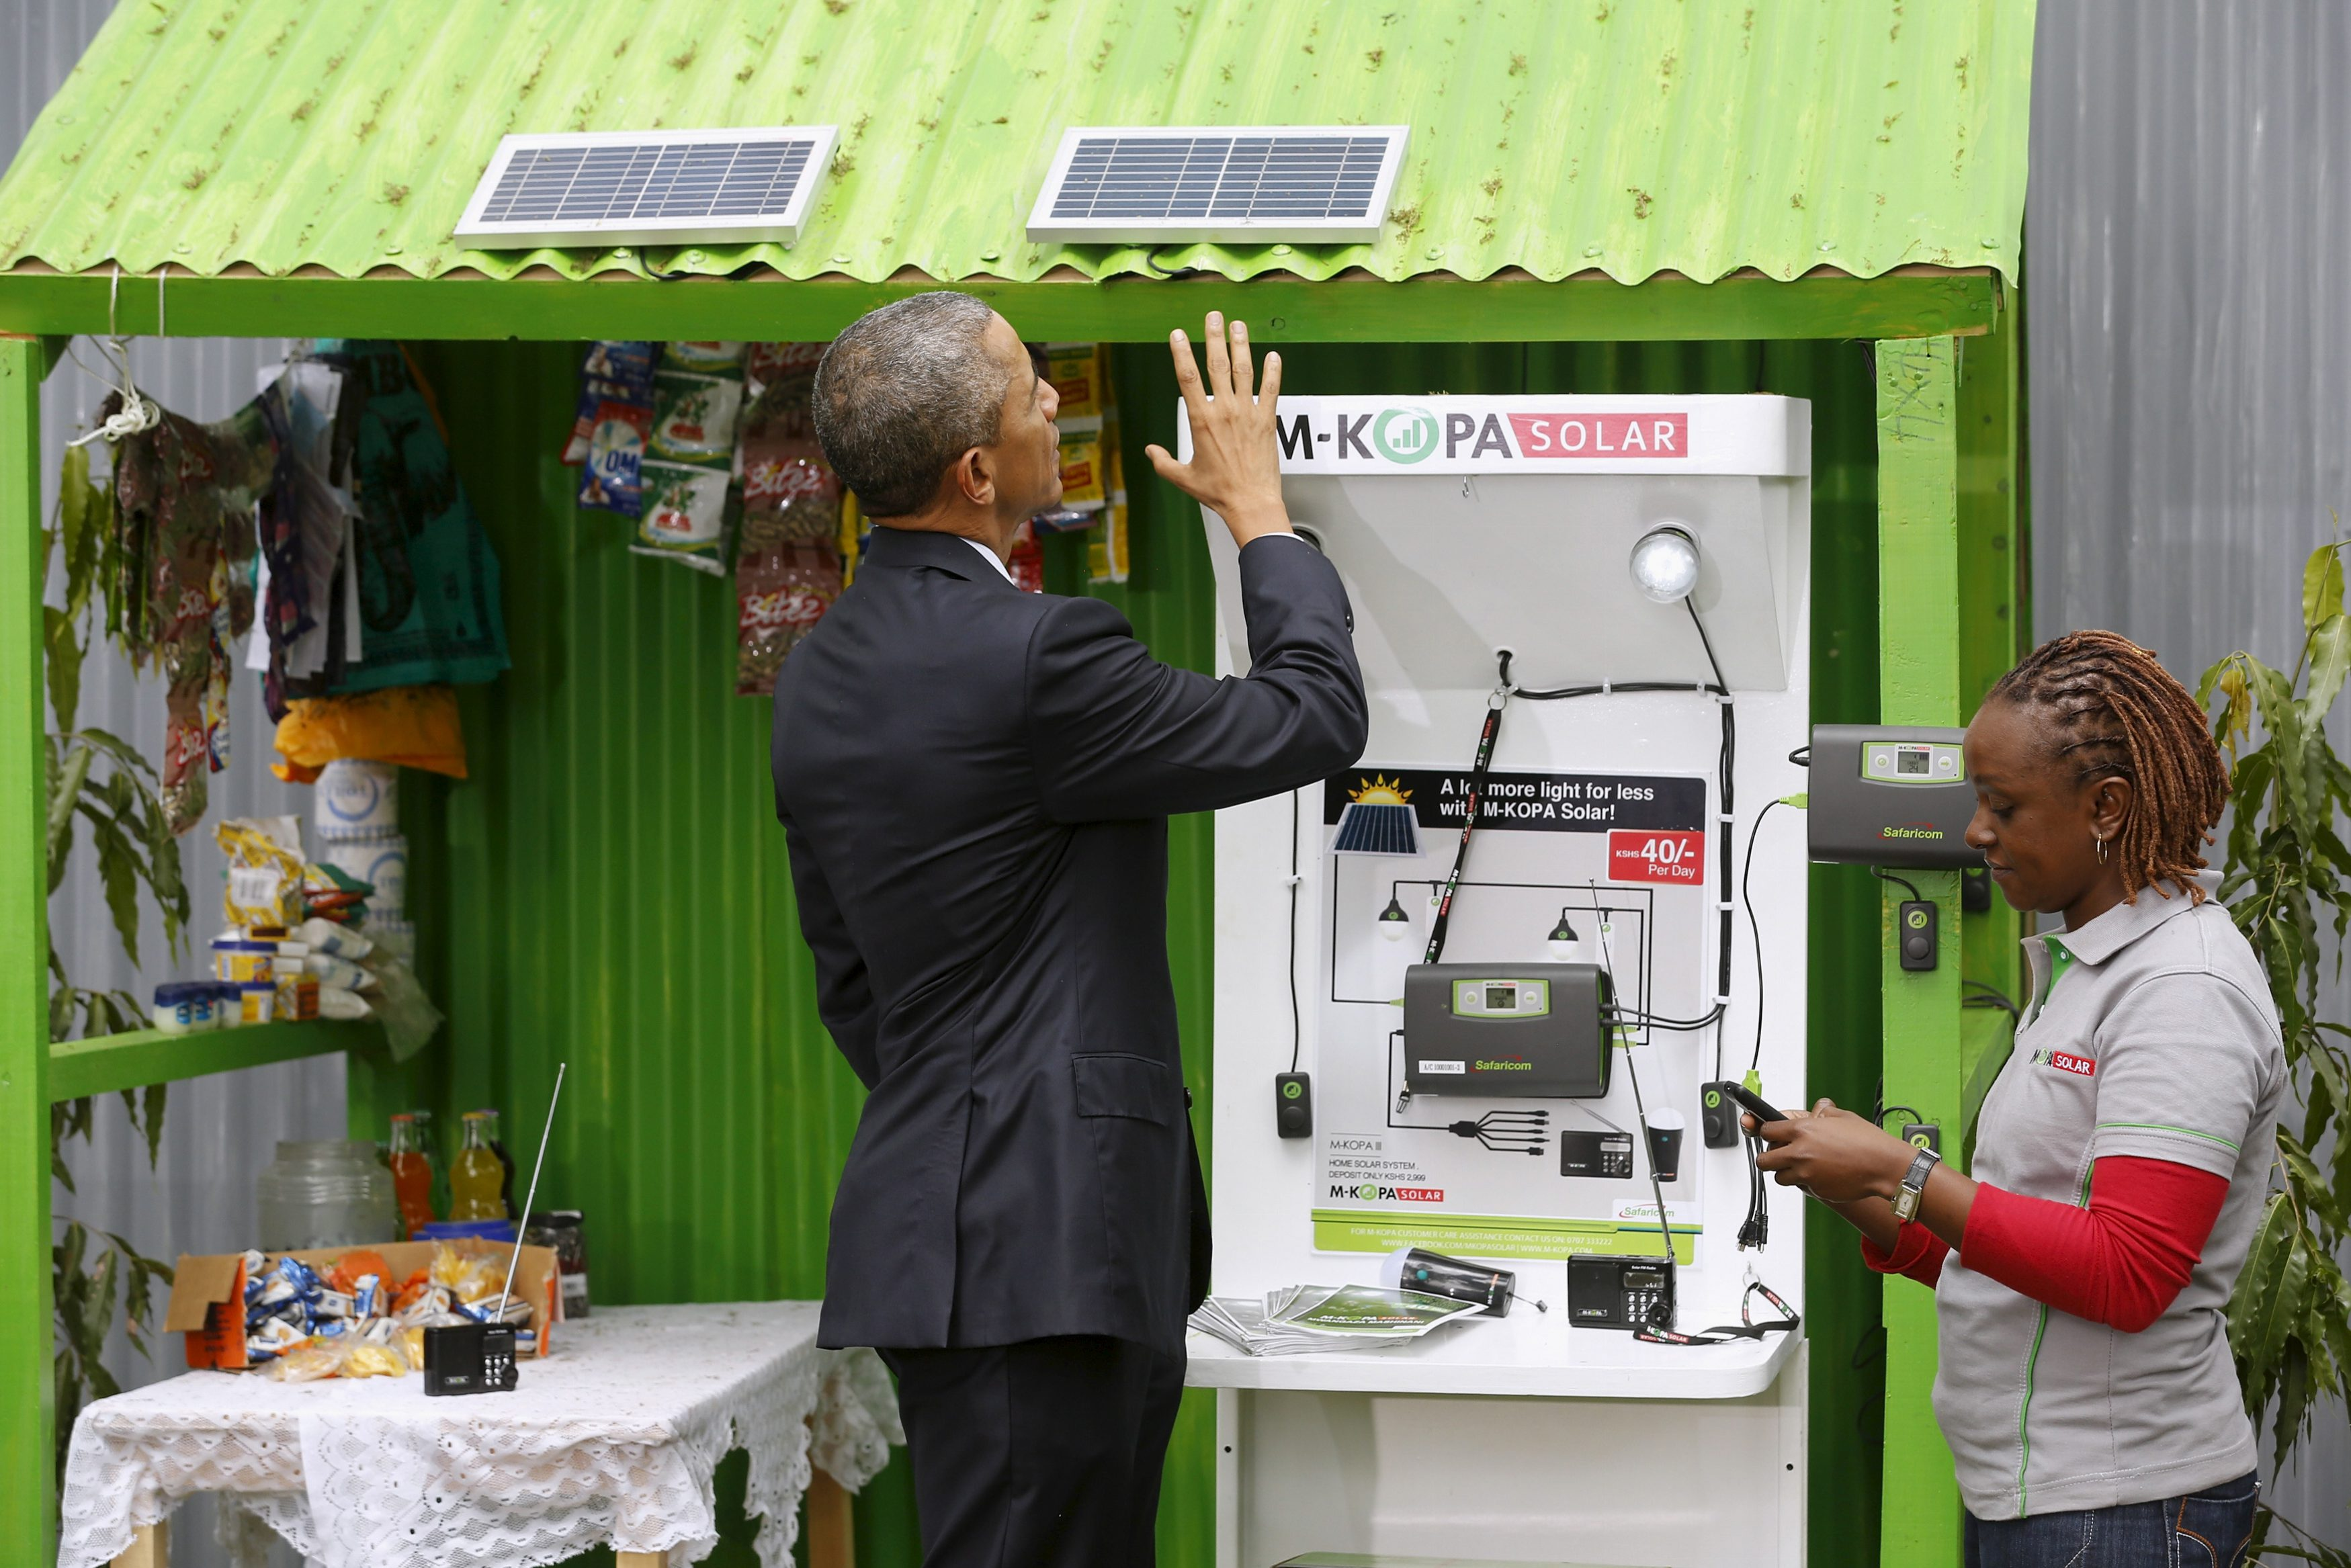 U.S. President Barack Obama (L) talks with a solar power businessperson at the Power Africa Innovation Fair at the United Nations compound in Nairobi, Kenya July 25, 2015.